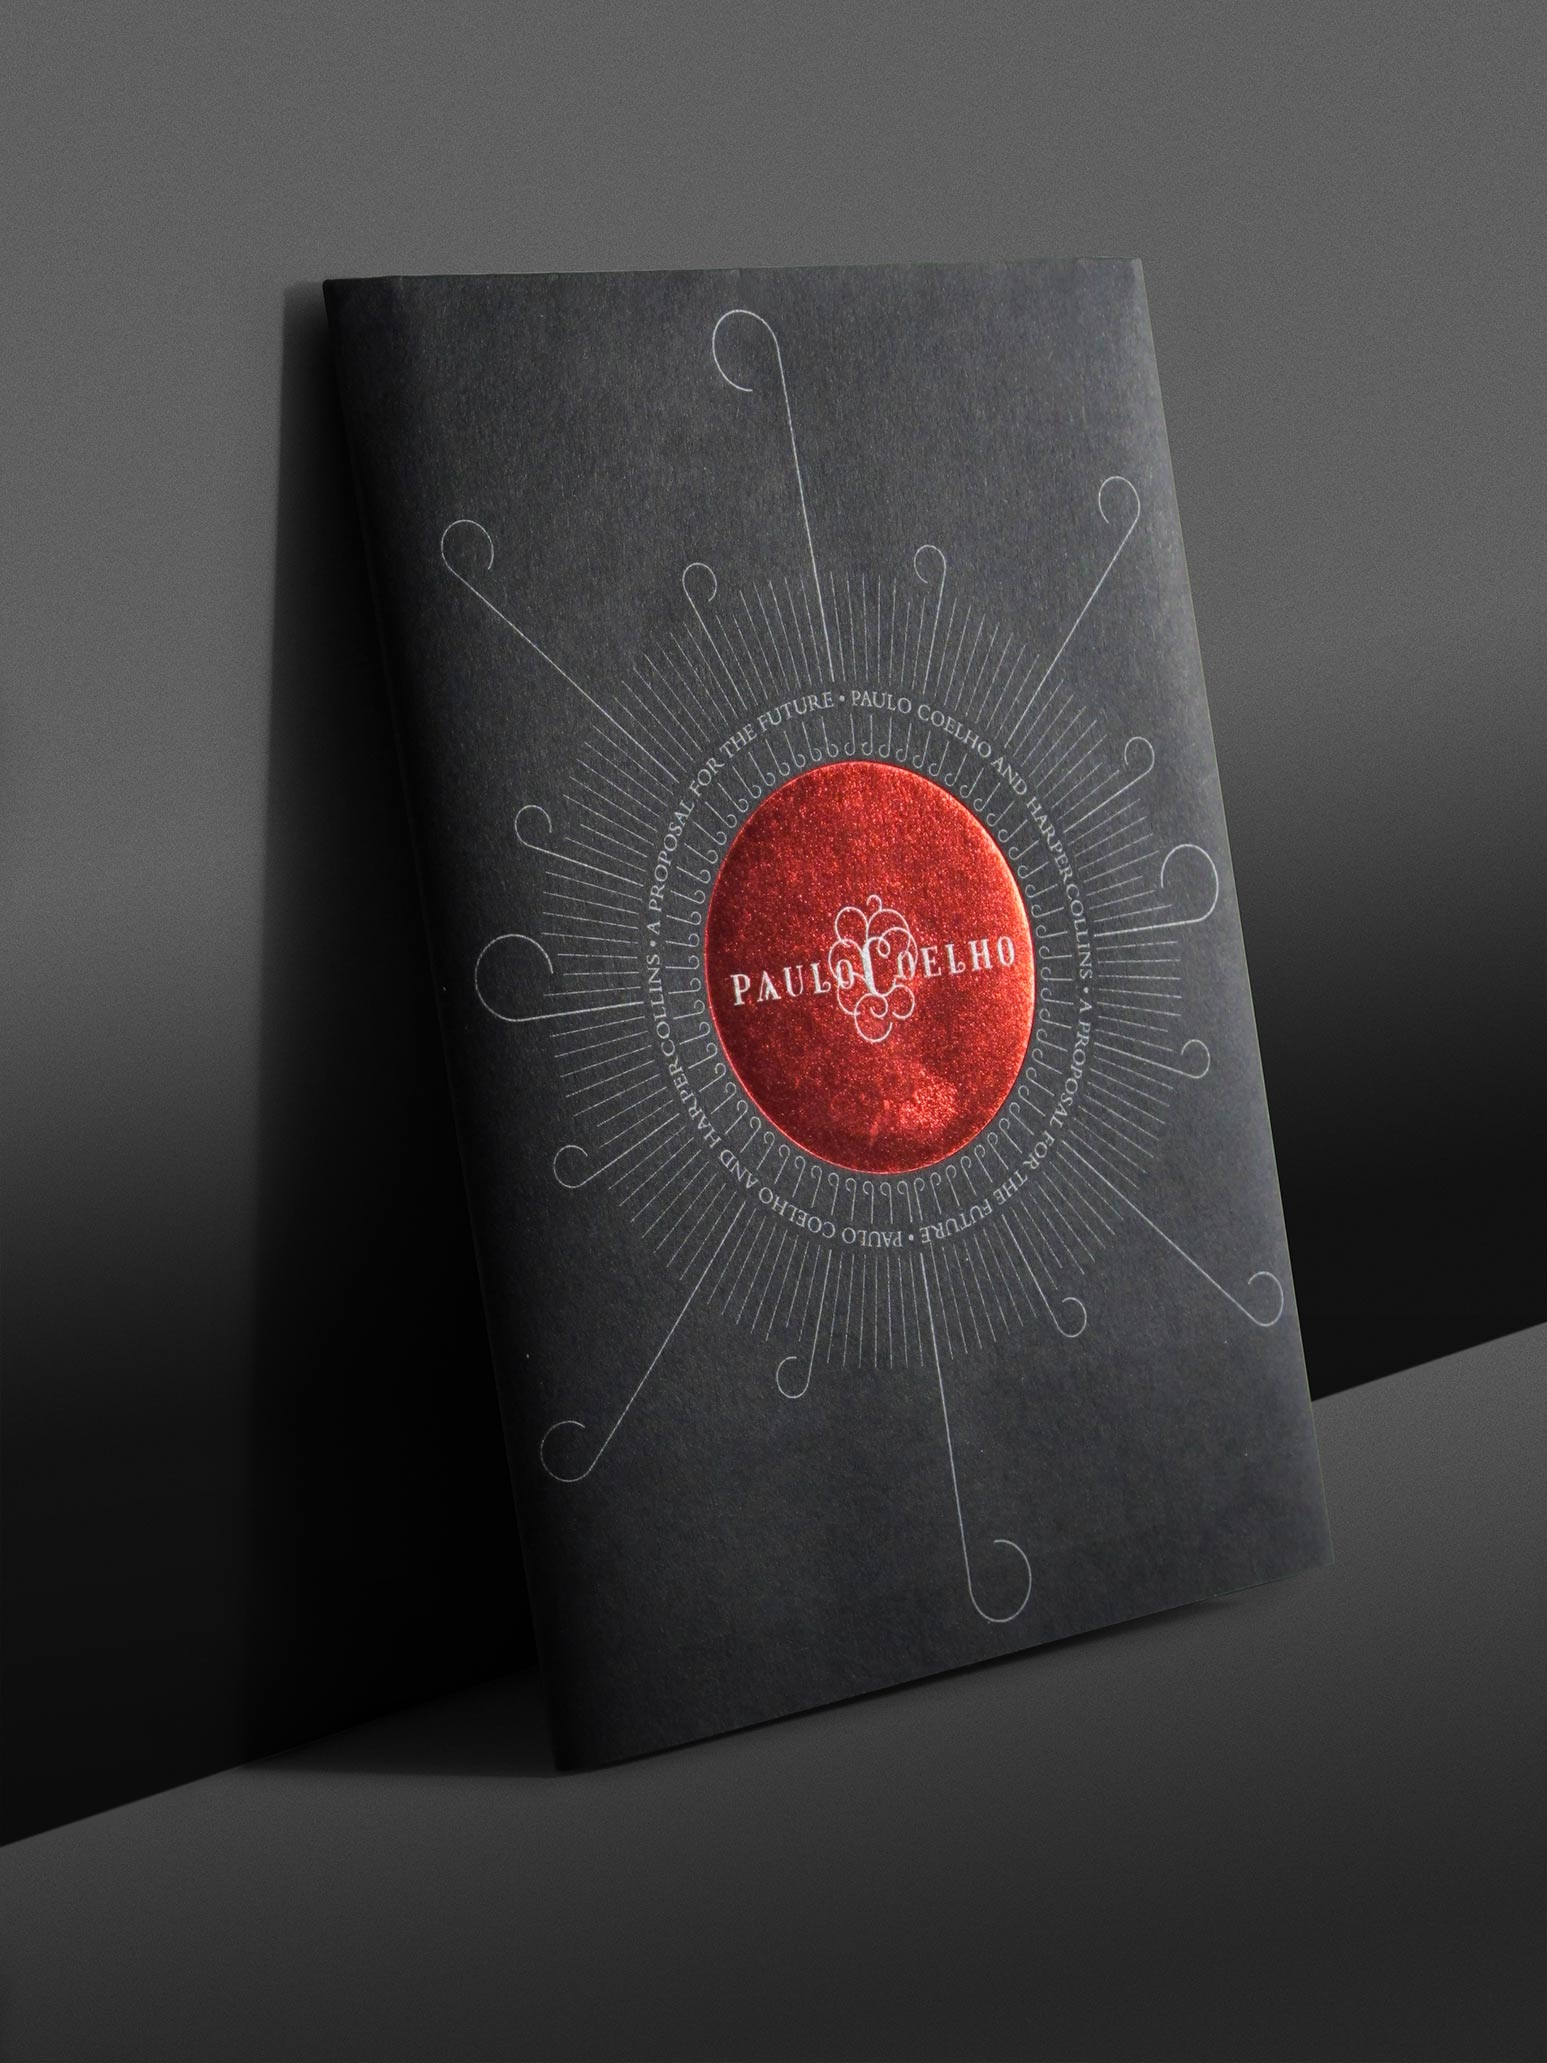 Paulo Coelho Harpercollins Promotional Collateral Foil Block 1